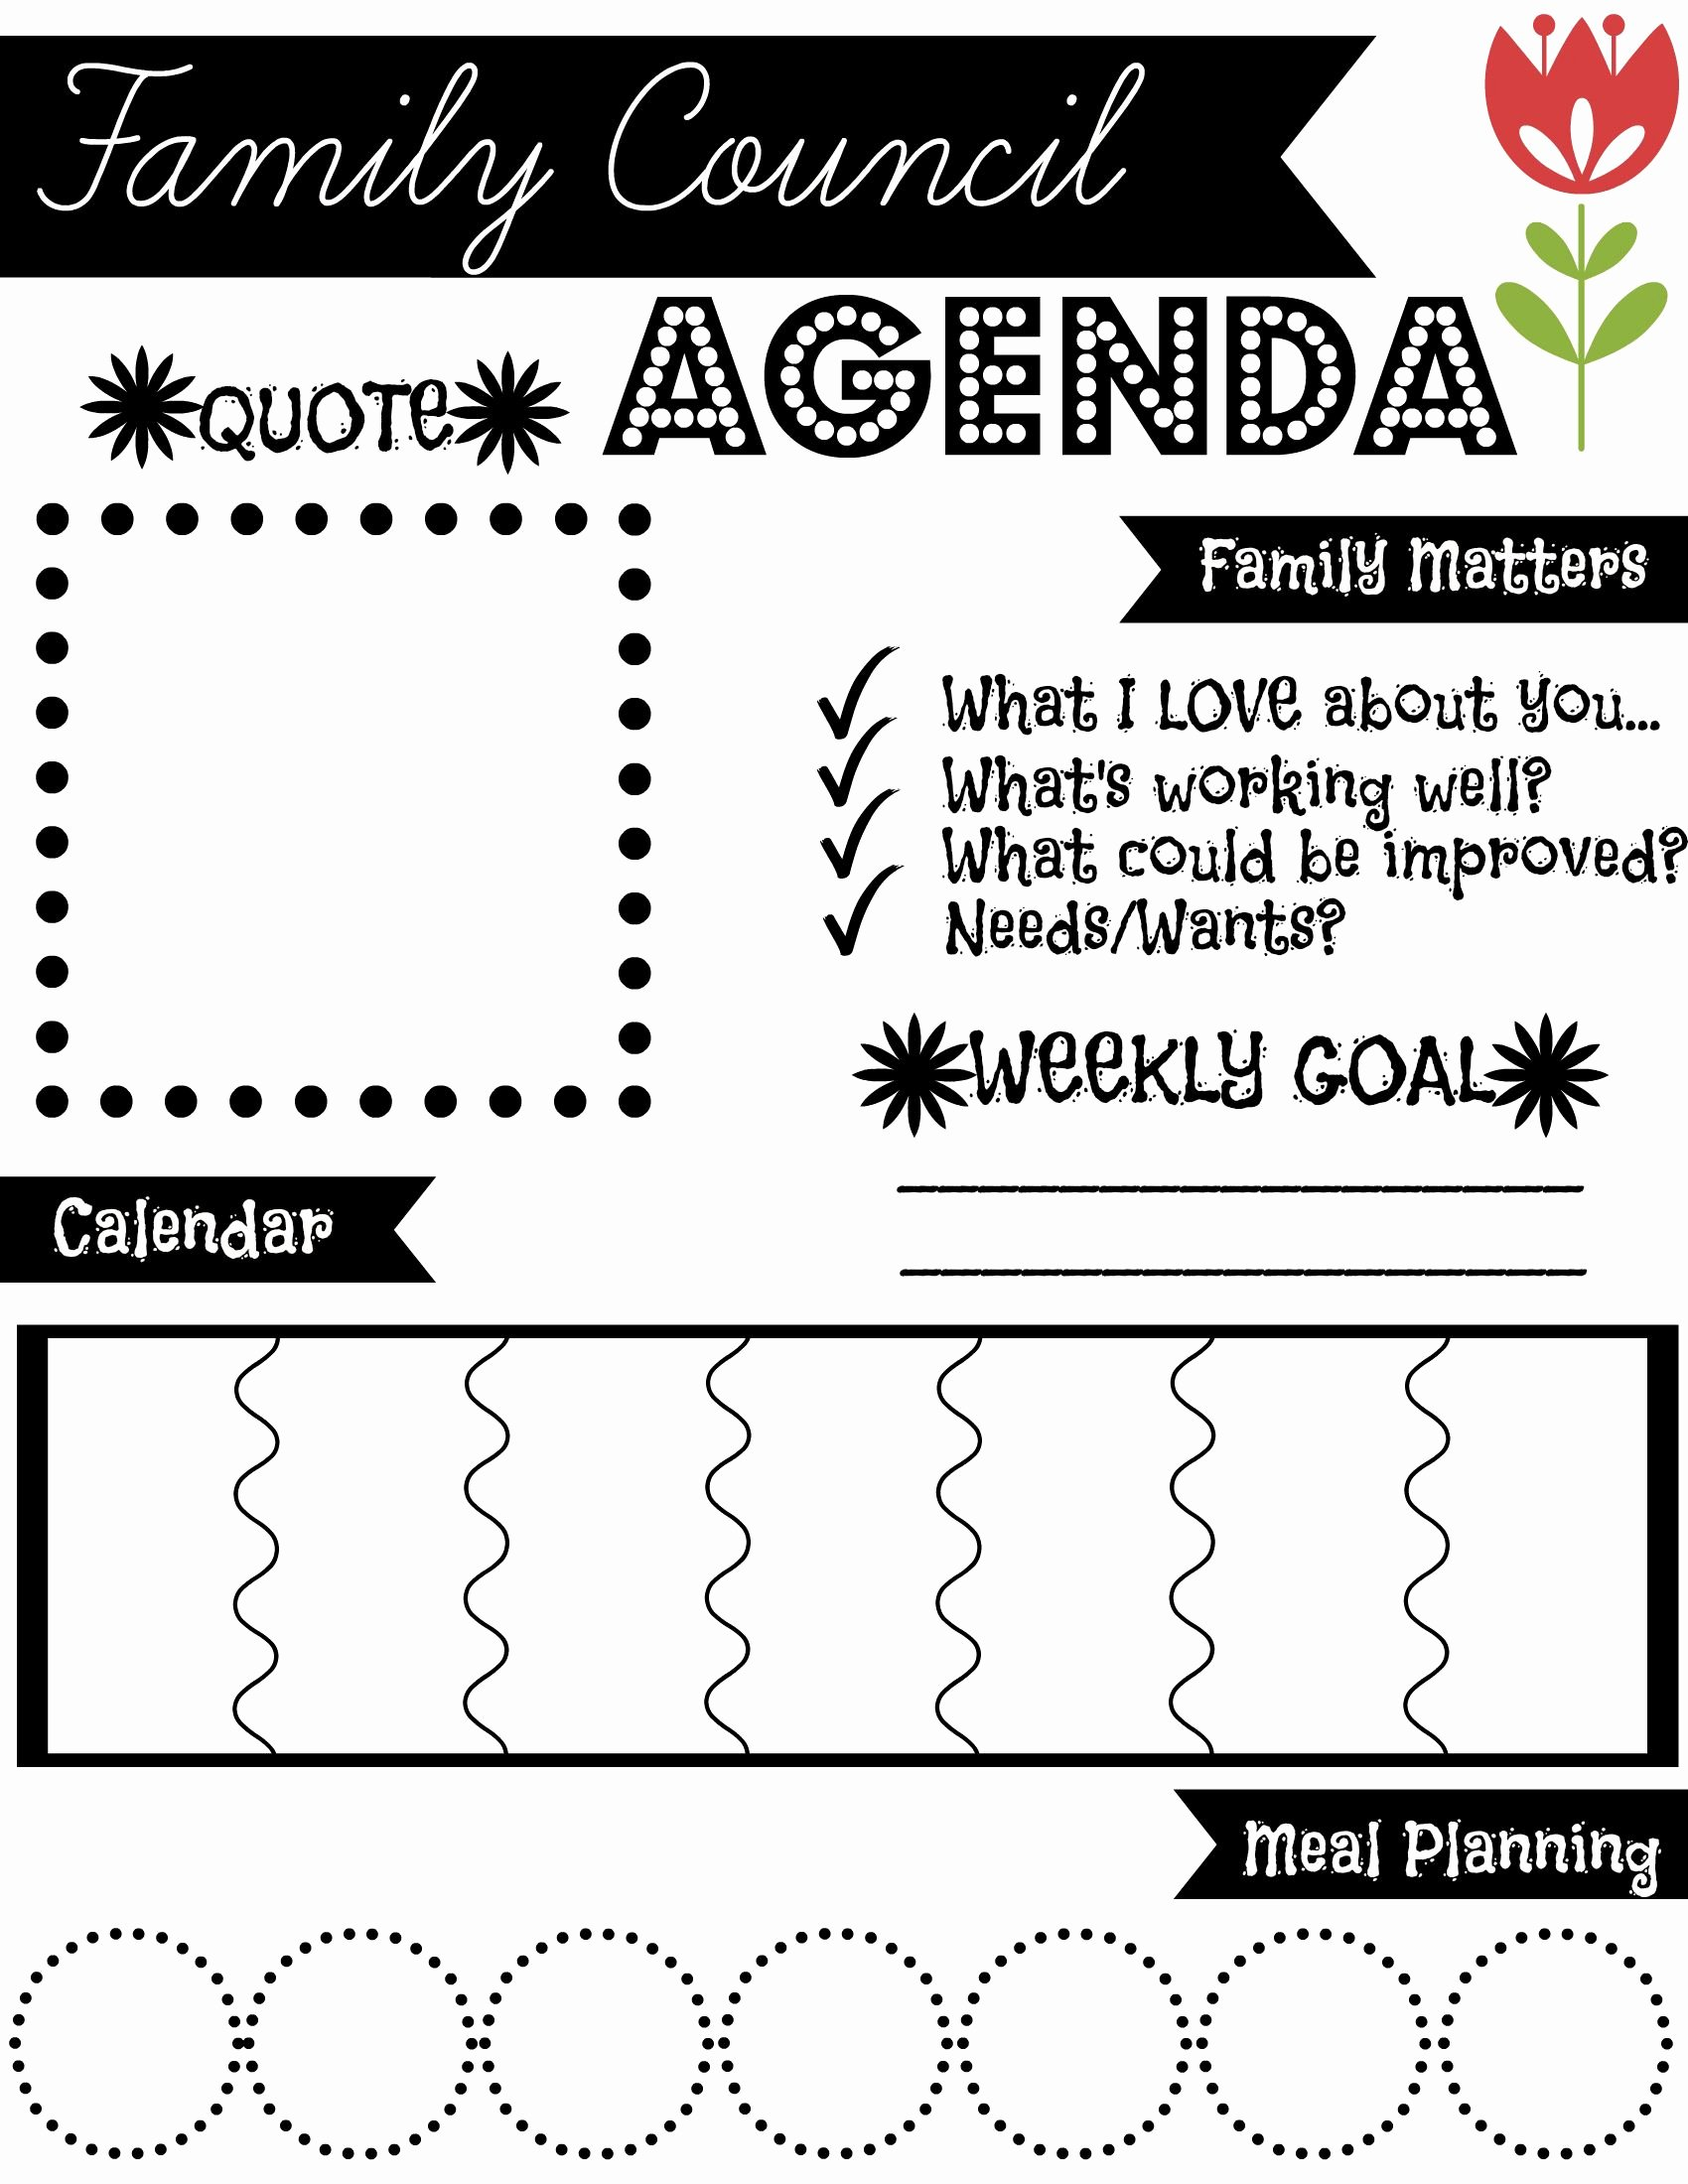 Family Meeting Agenda Templates Fresh Family Council Agenda Find More Free Printables at